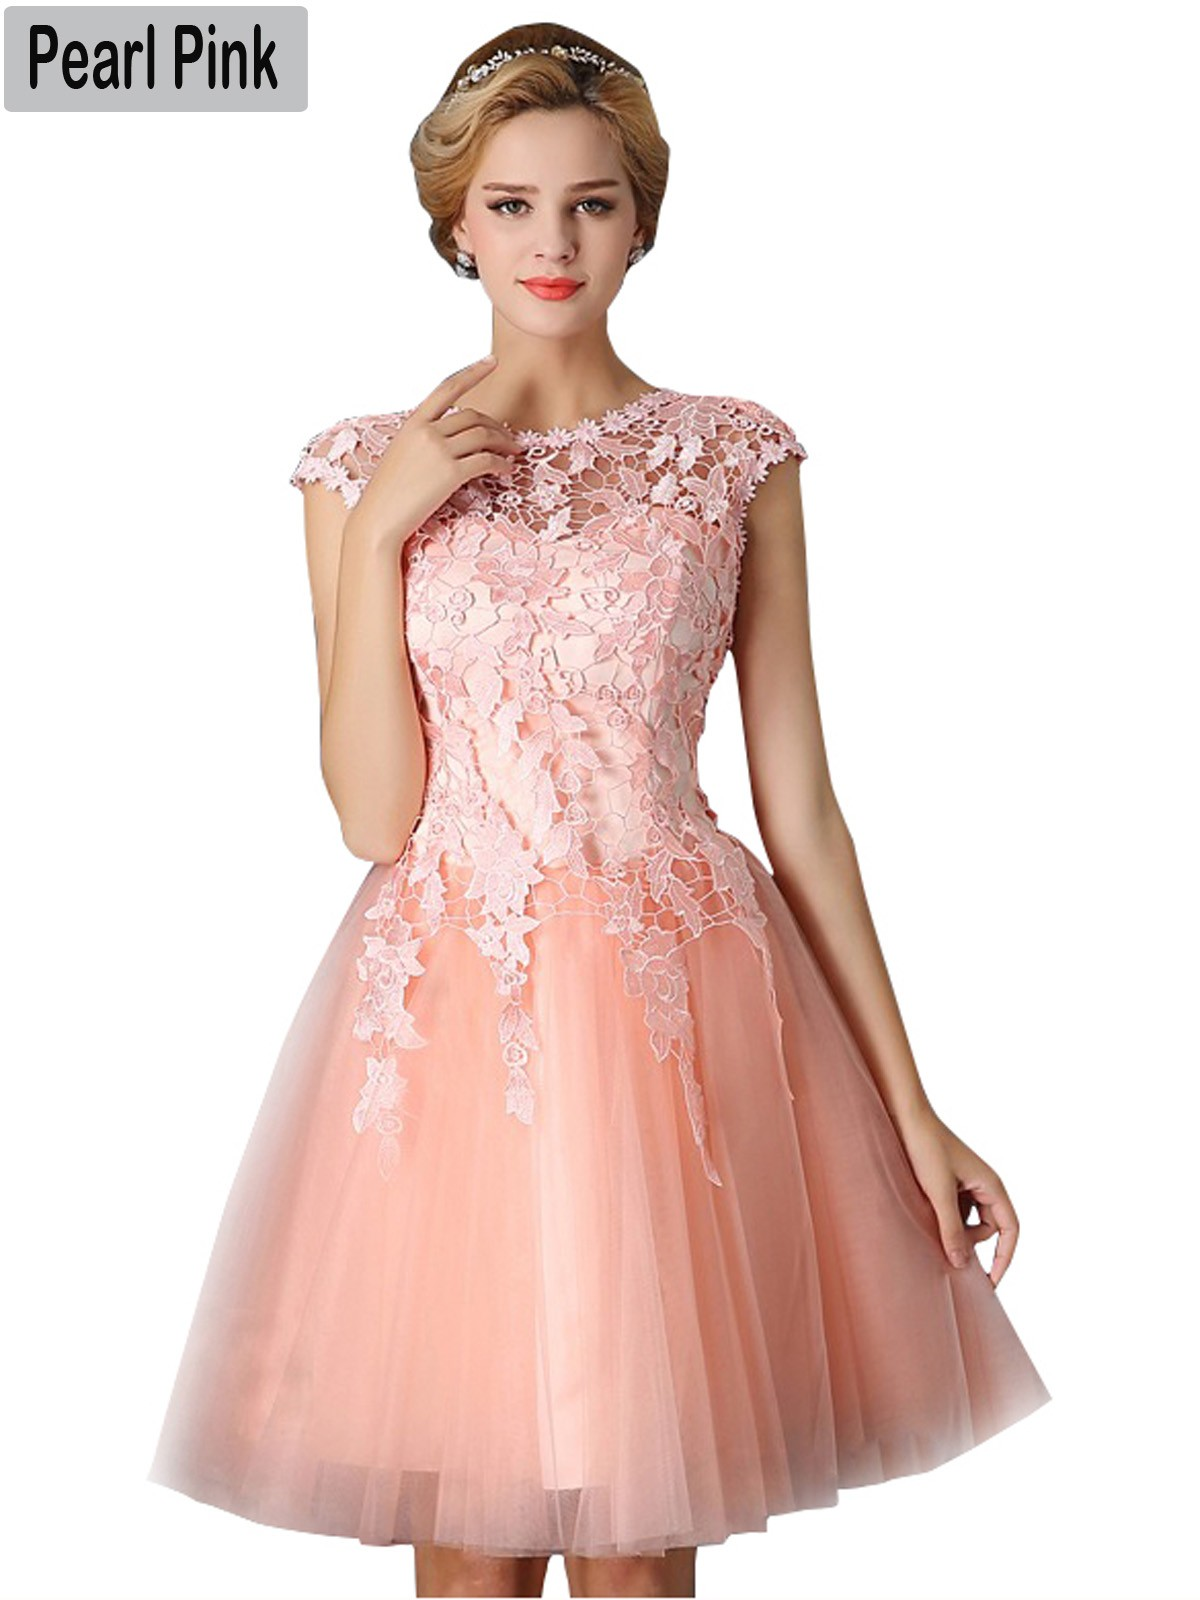 Short Pearl Pink Bridesmaid Dress 2018 Elegant A-Line Red Formal ...